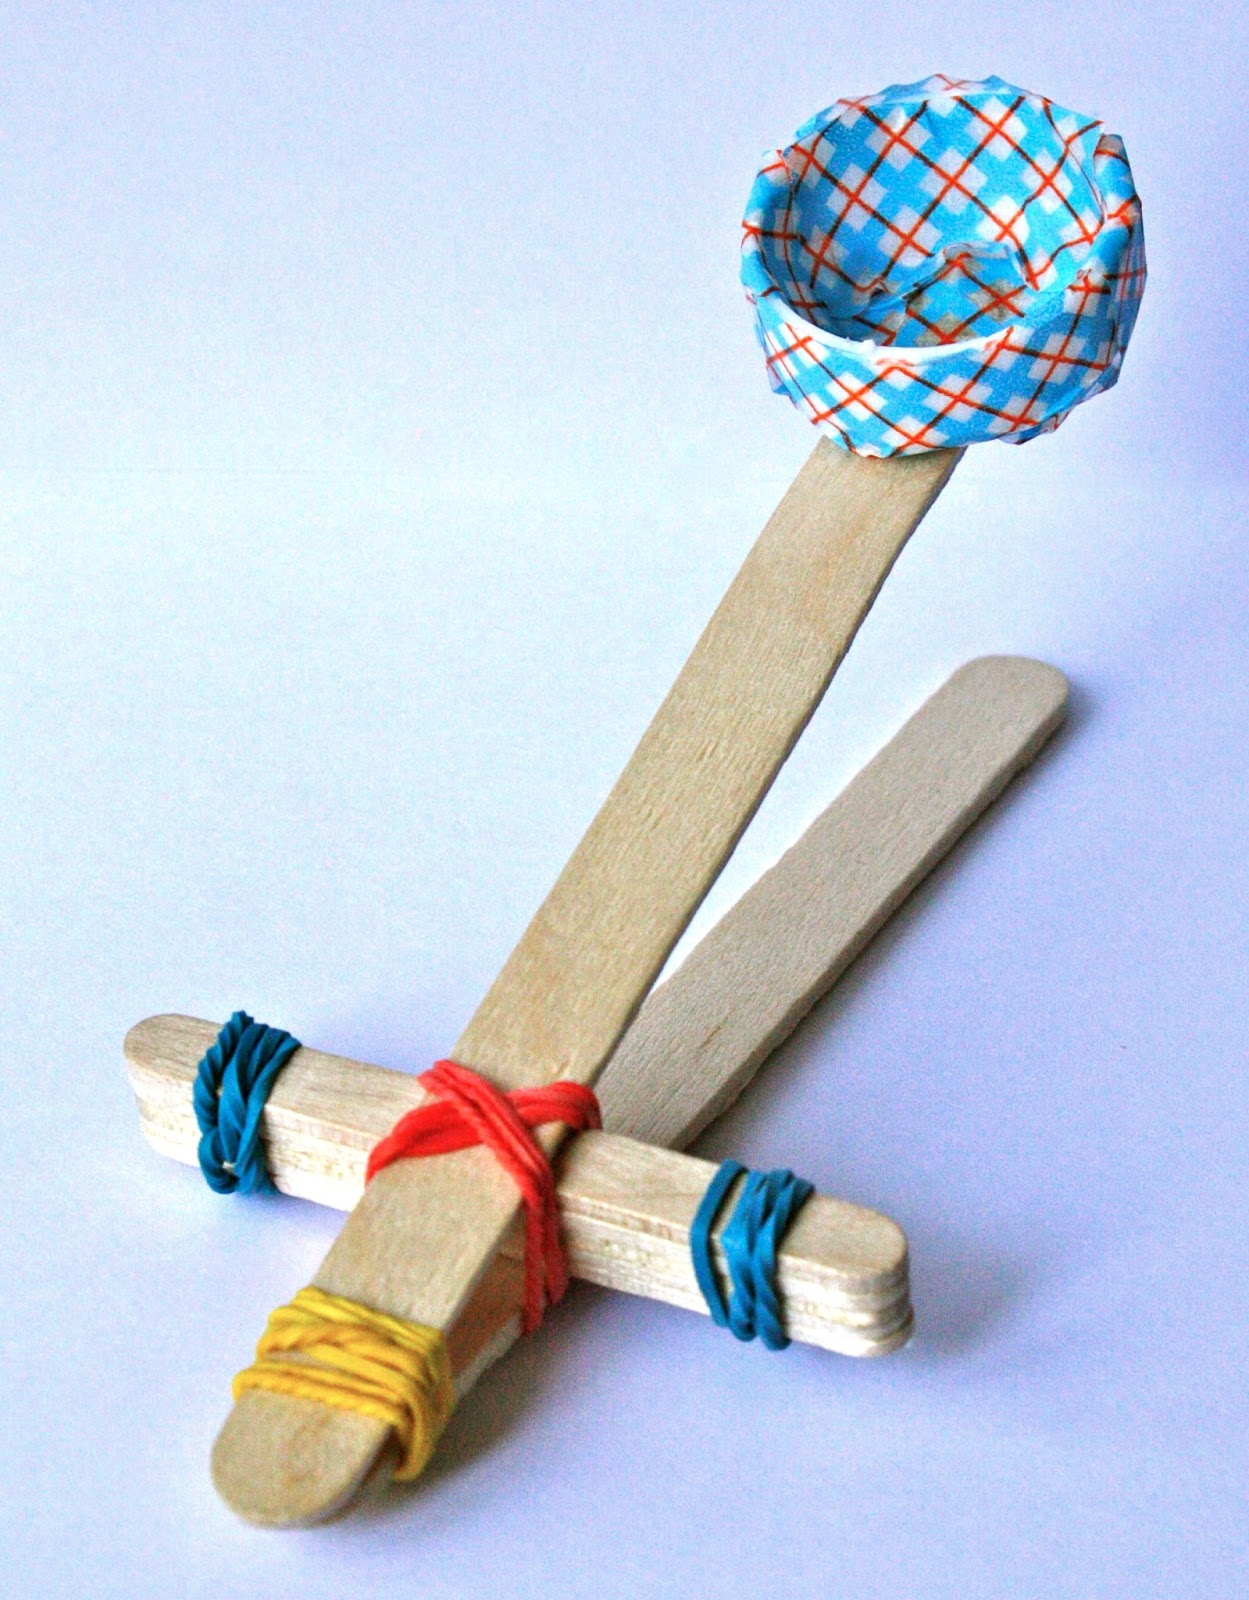 Catapult Craft For Kids: Mrs Fox's Life, Home, Crafts